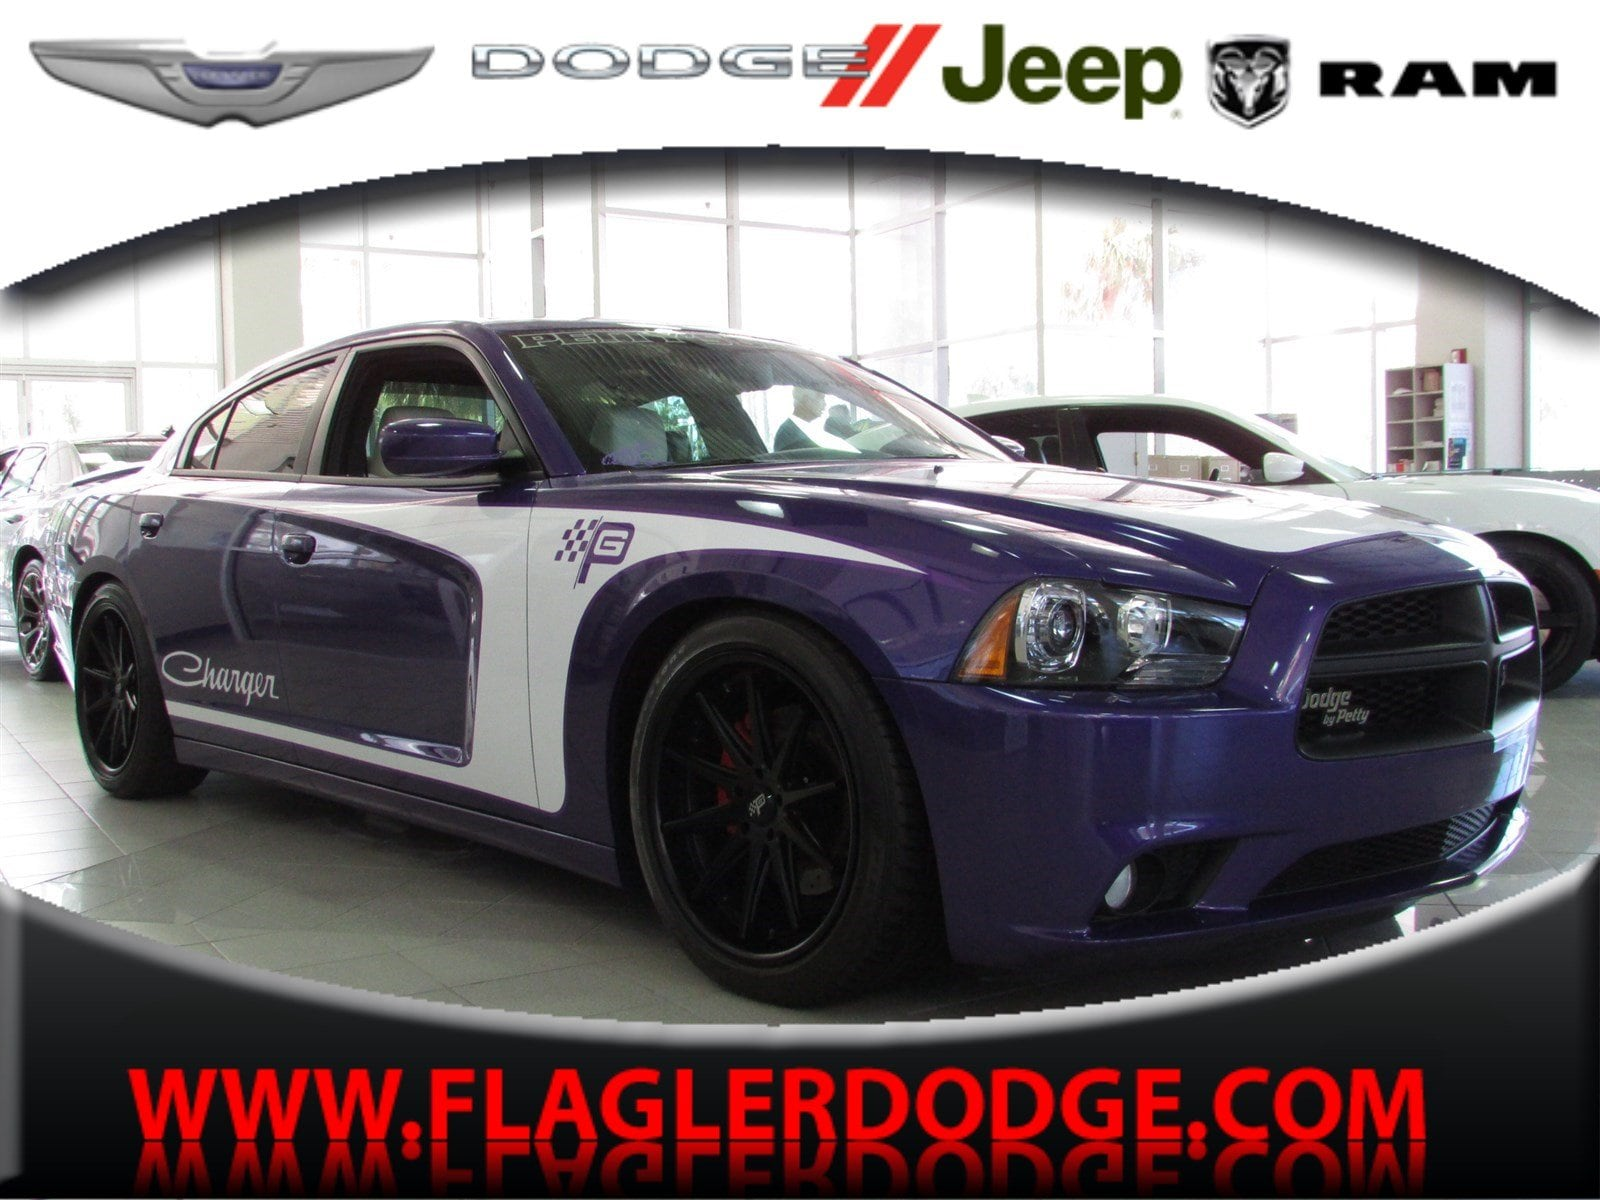 Dodge Charger Rt For Sale >> Used 2014 Dodge Charger R T For Sale Palm Coast Fl Vin 2c3cdxct7eh155362